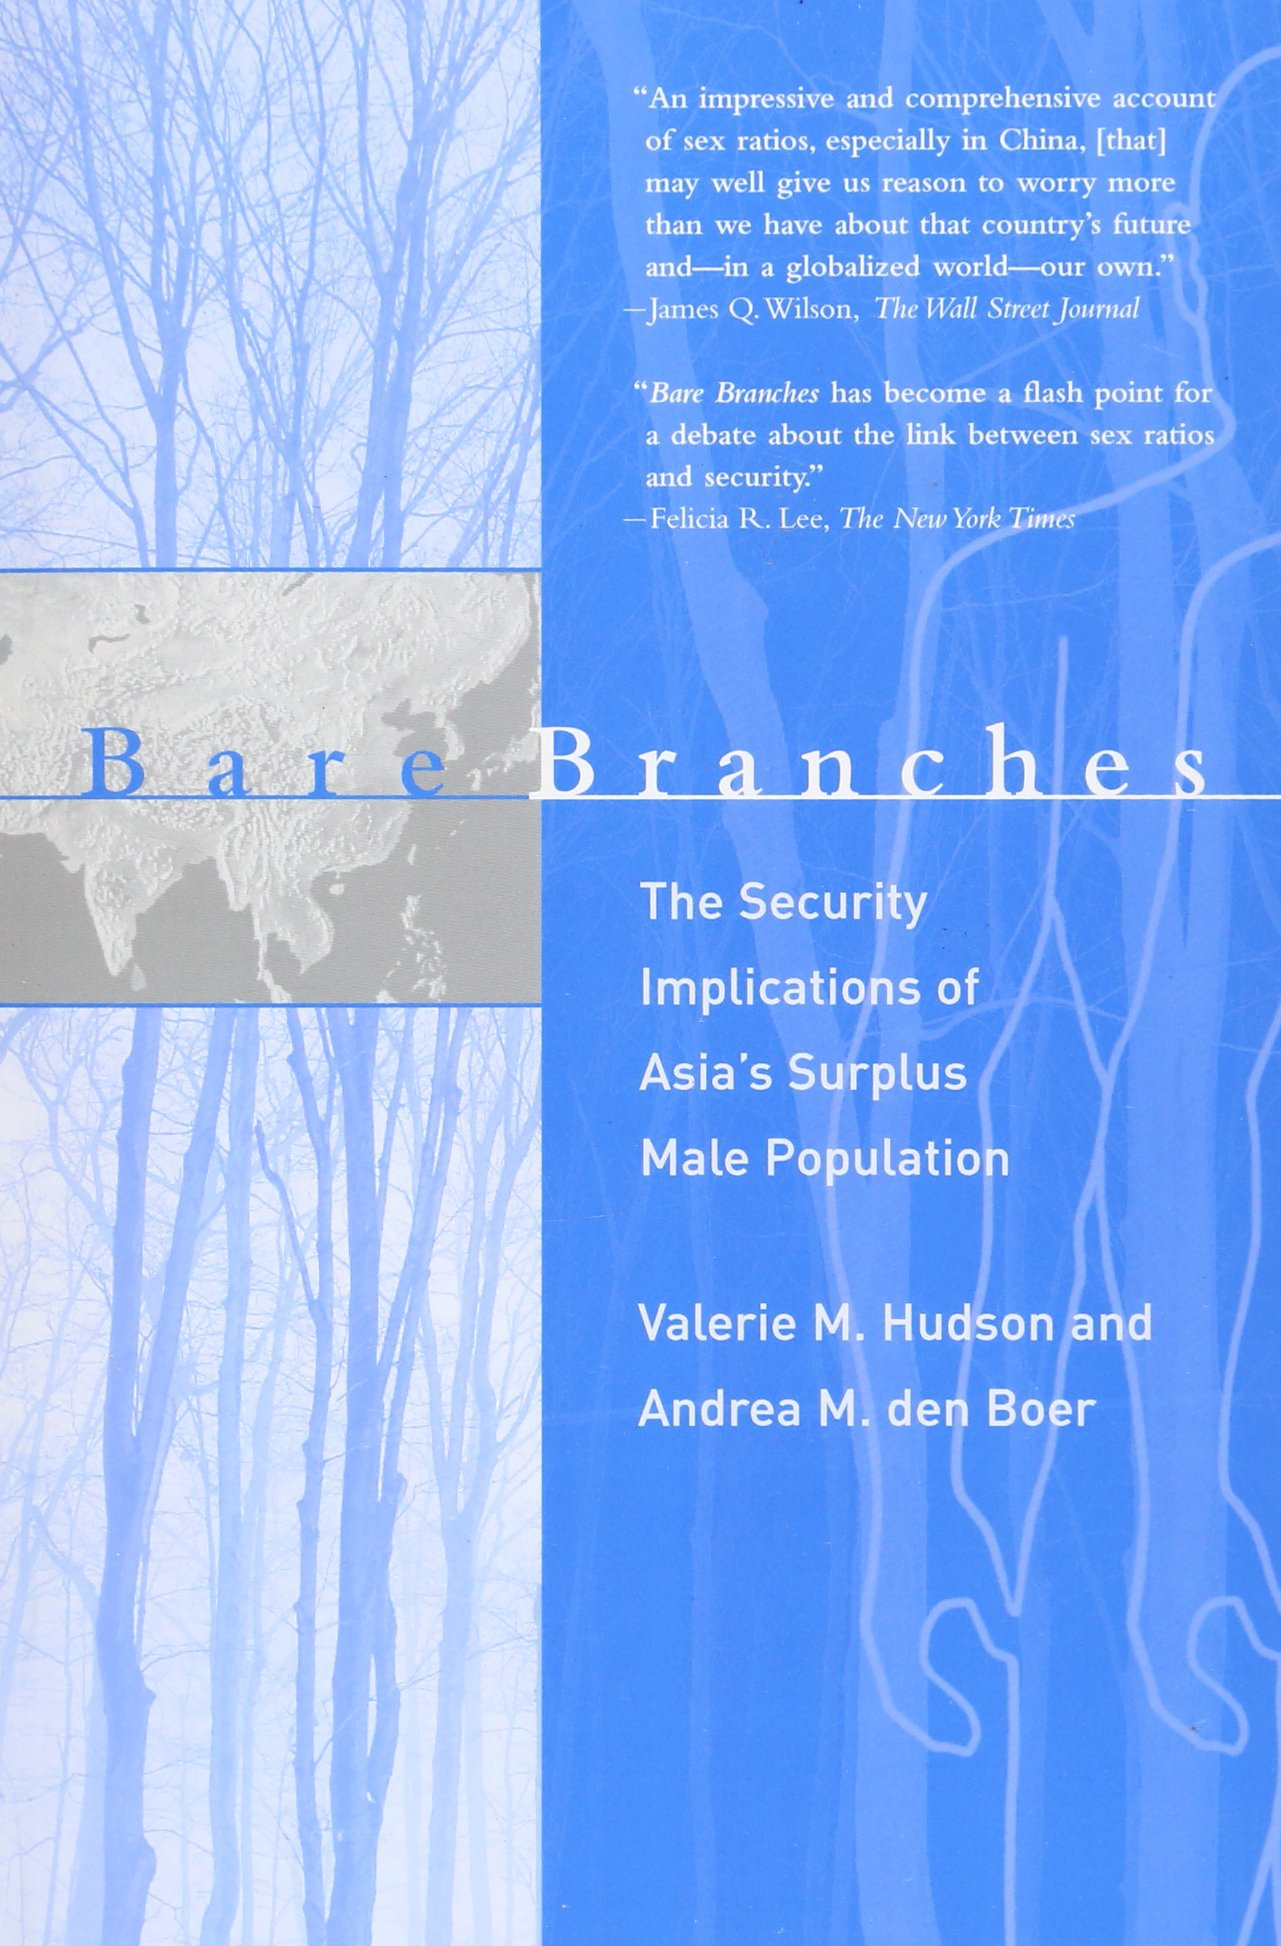 amazon com bare branches the security implications of asia u0027s